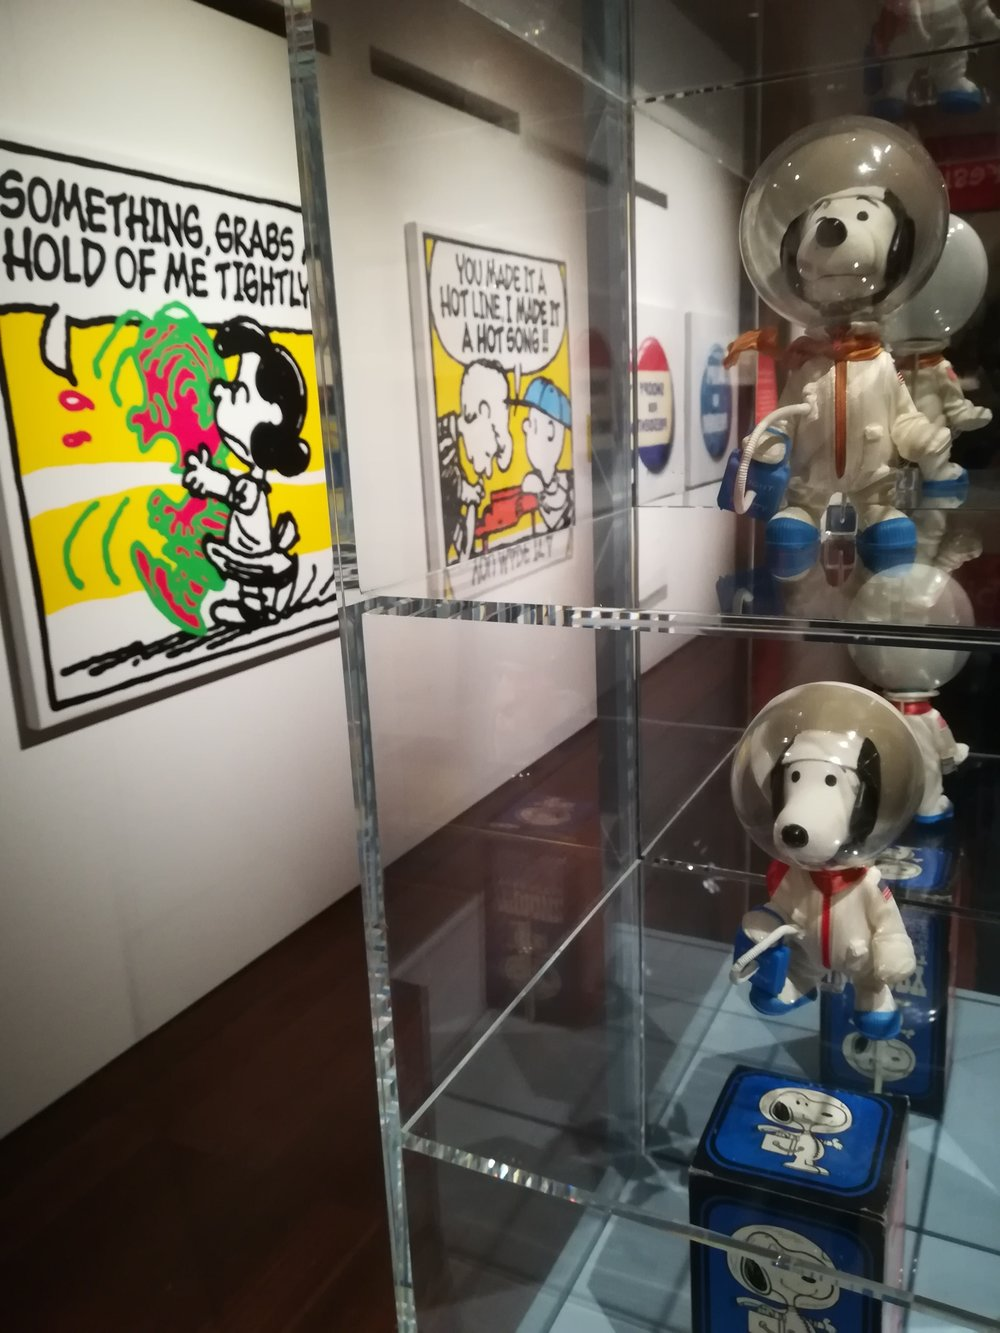 Good Grief, Charlie Brown Exhibition in London